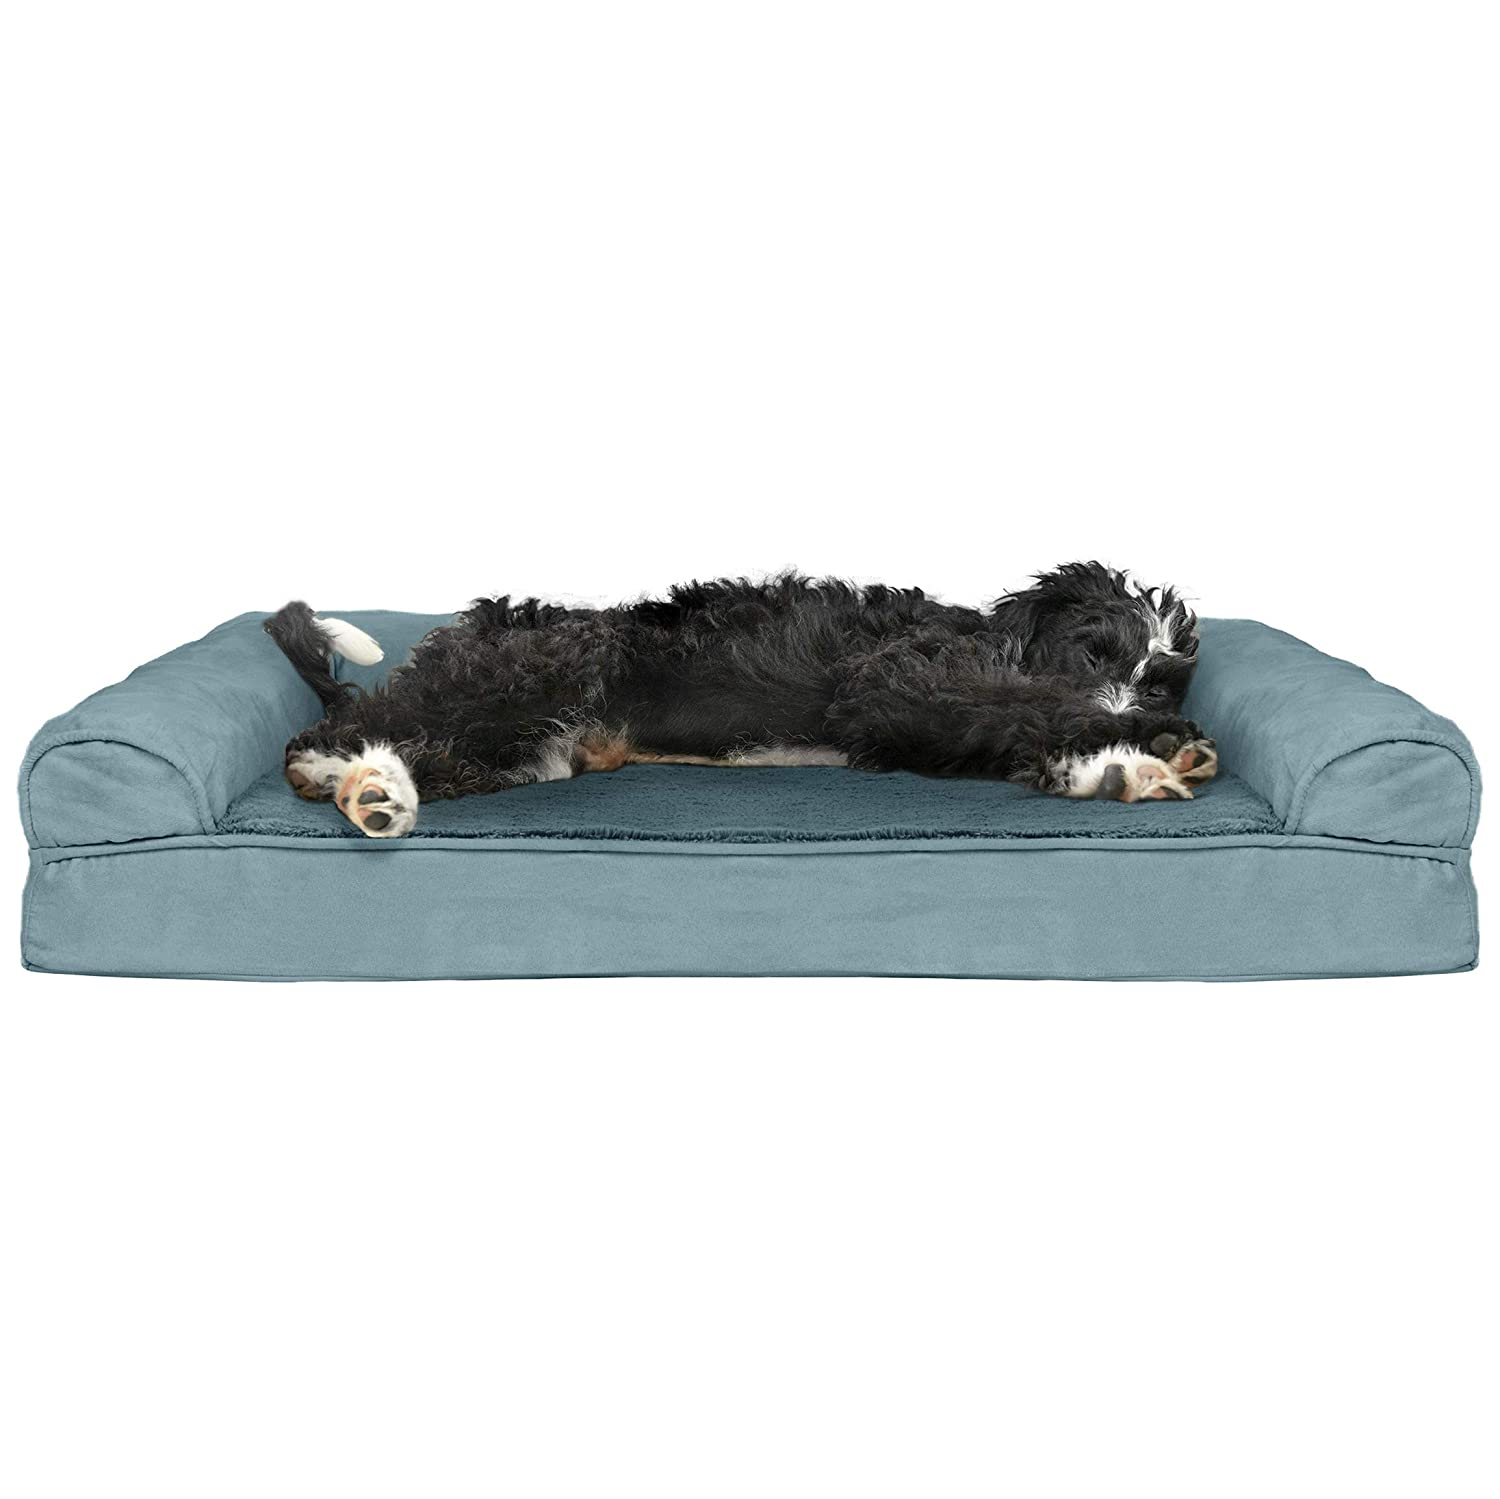 FurHaven Pet Dog Bed   Cooling Gel Memory Foam Orthopedic Ultra-Plush Sofa-Style Couch Pet Bed for Dogs & Cats, Deep Pool, Large